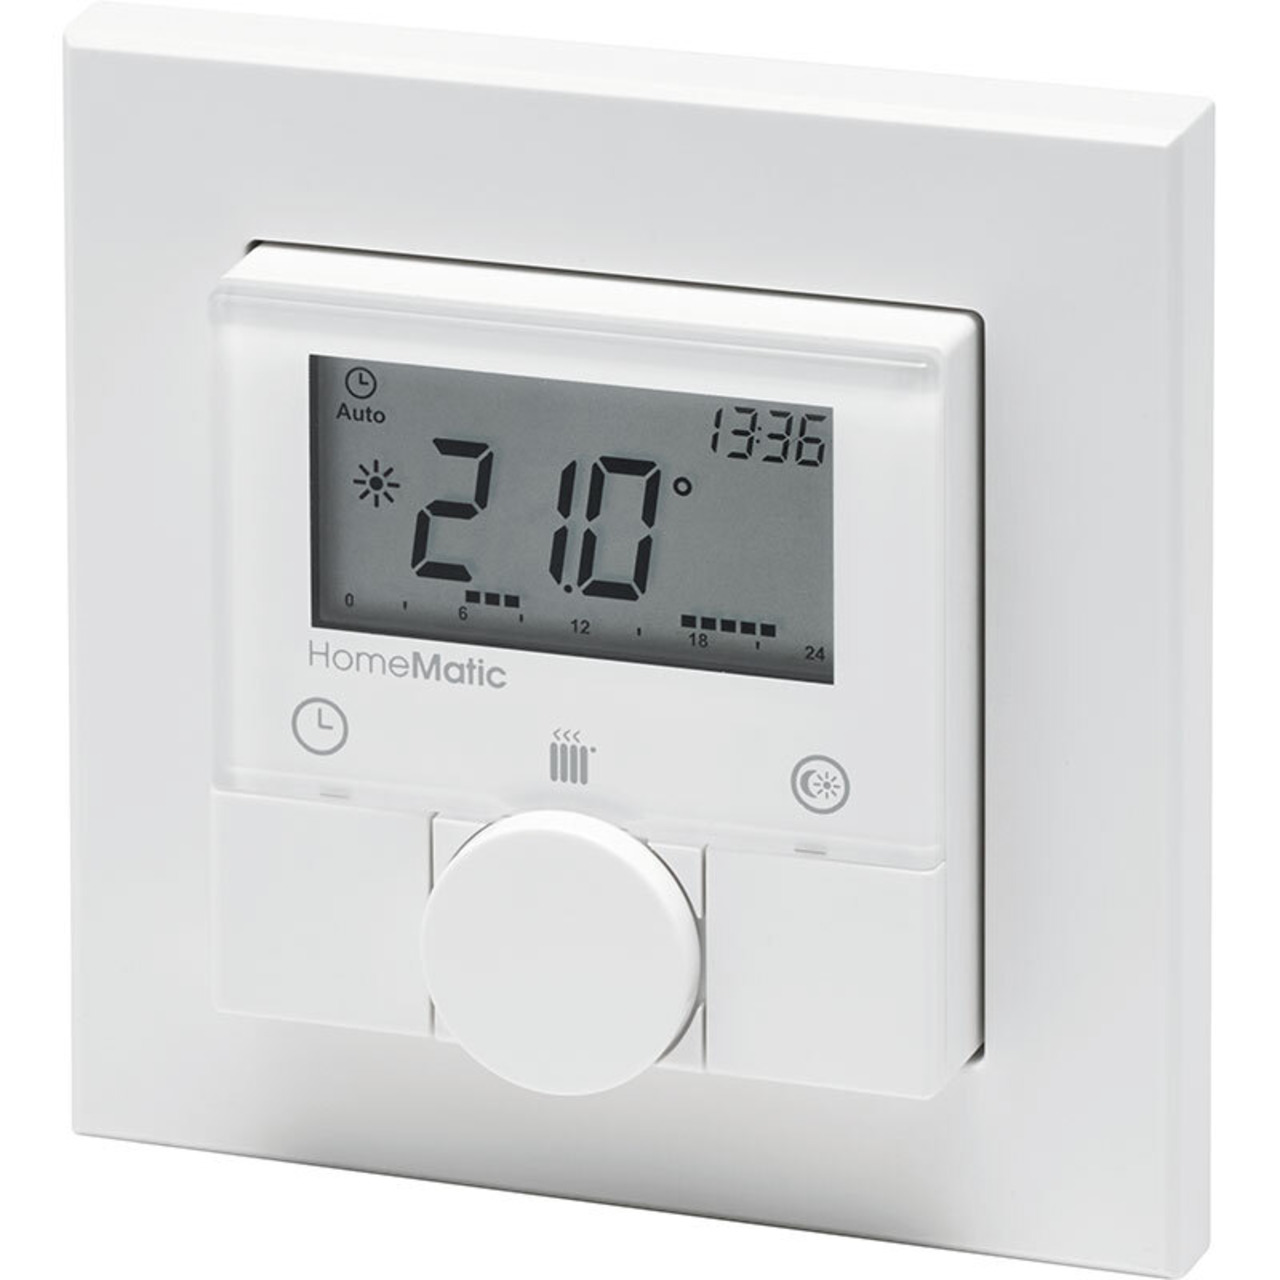 ELV Homematic ARR-Bausatz Funk-Wandthermostat HM-TC-IT-WM-W-EU- für Smart Home - Hausautomation